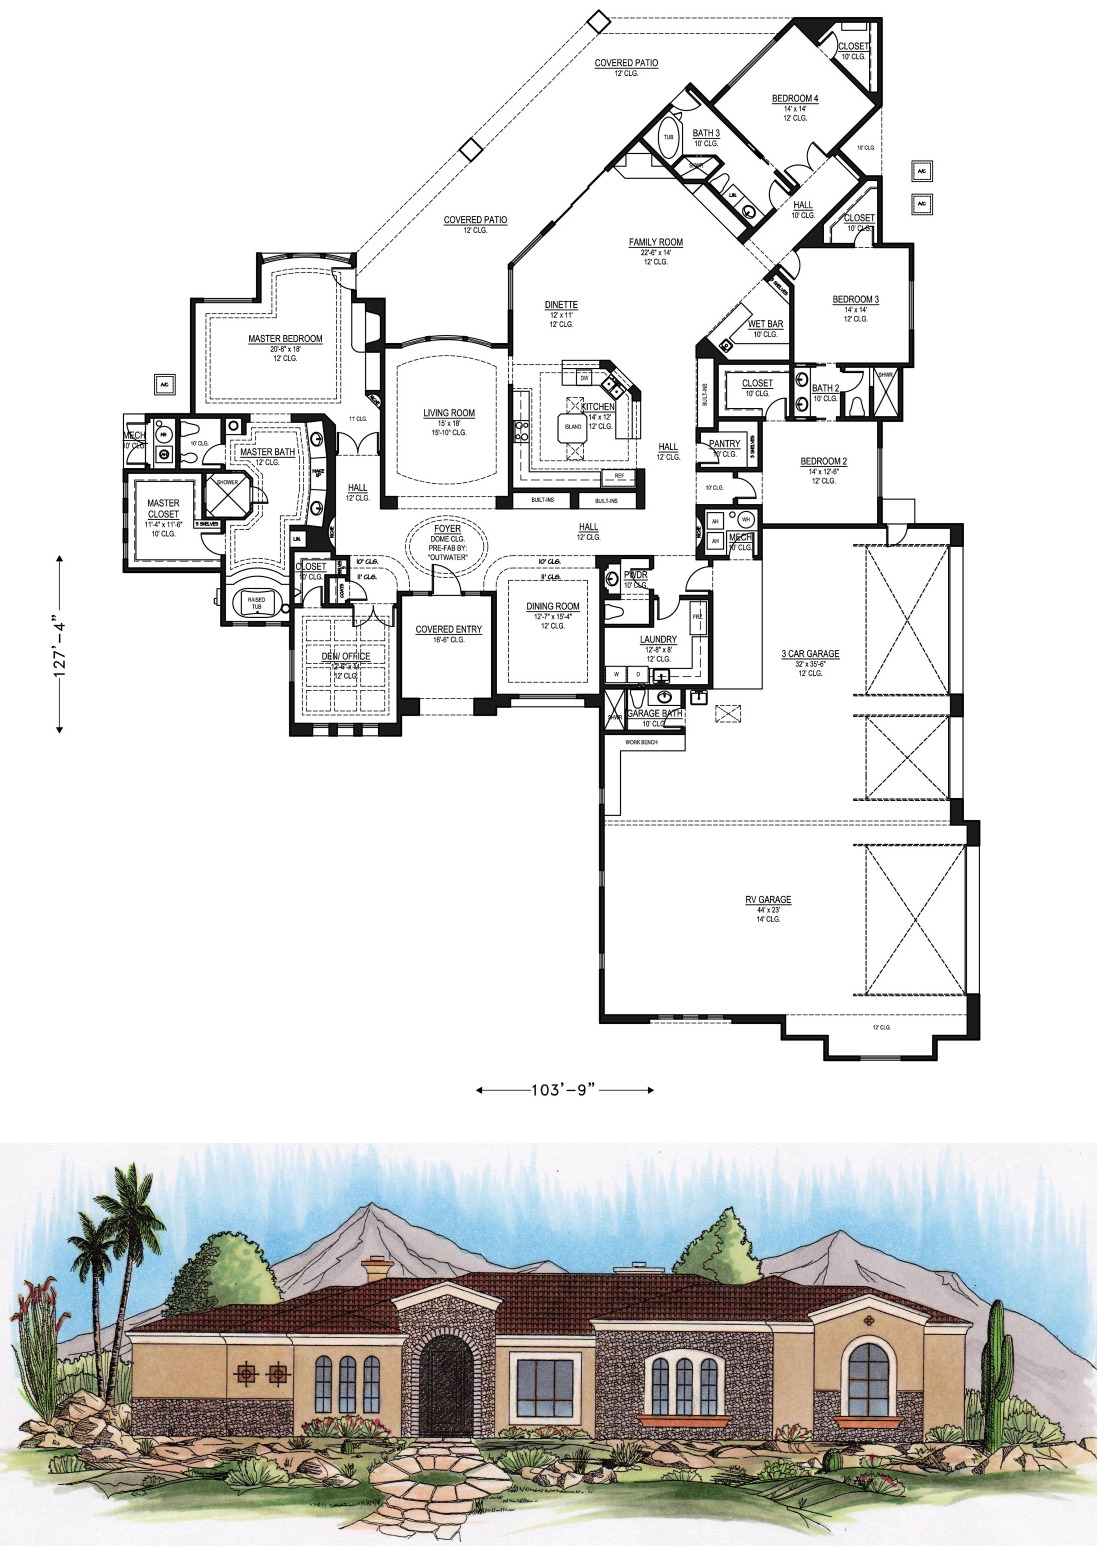 6 Bedroom 6 Bathroom House Plans Unique 4000 Square Feet and R